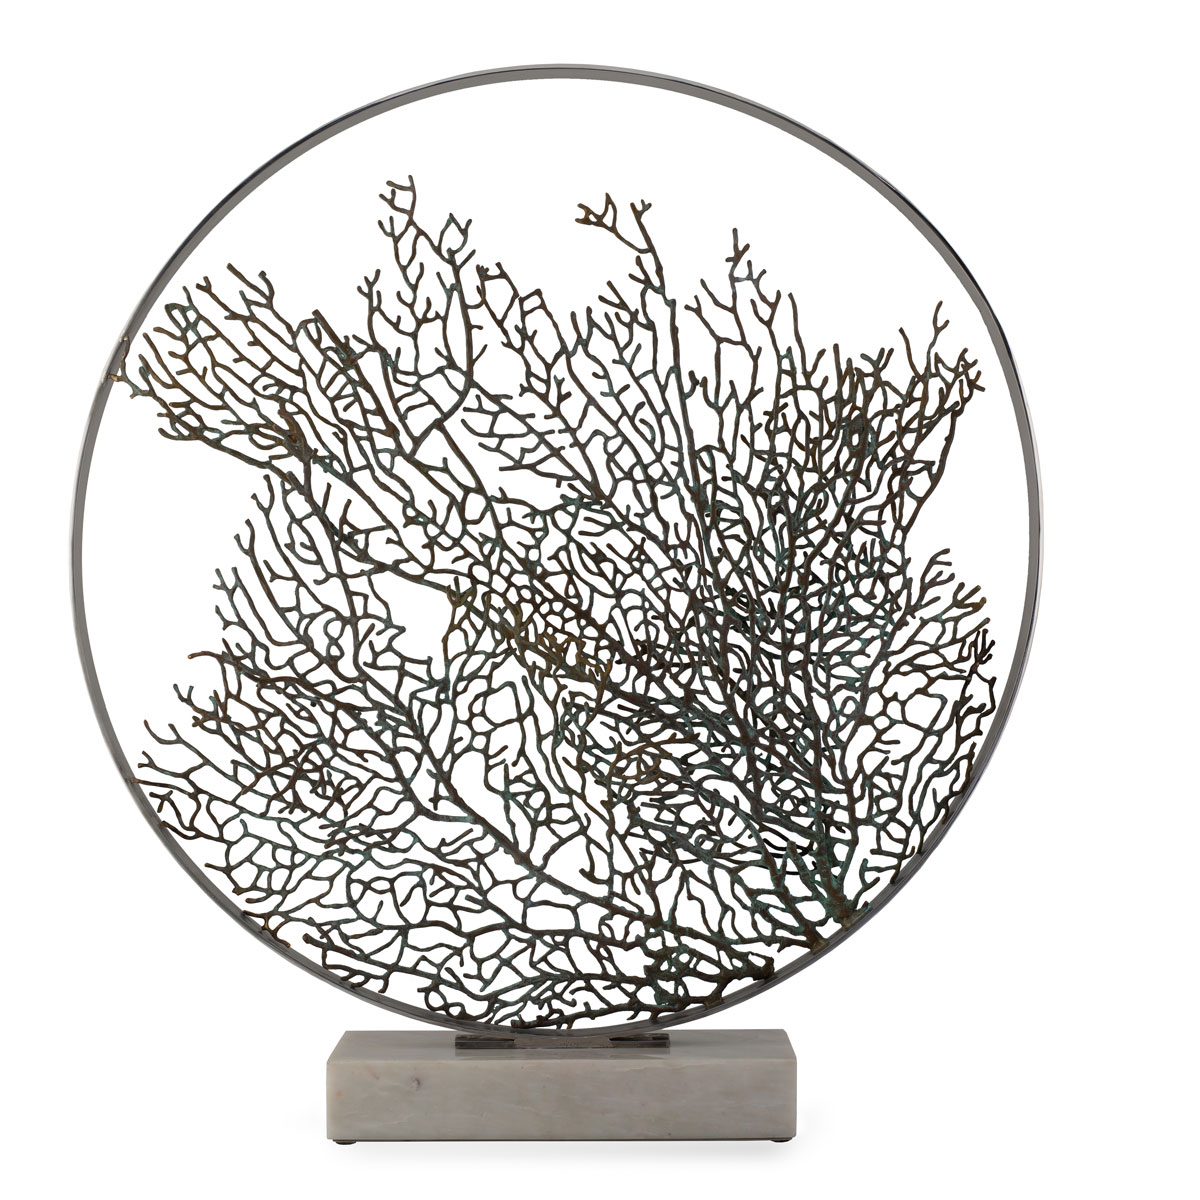 "Michael Aram Fan Coral 32"" Moon Gate Sculpture, Limited Edition"